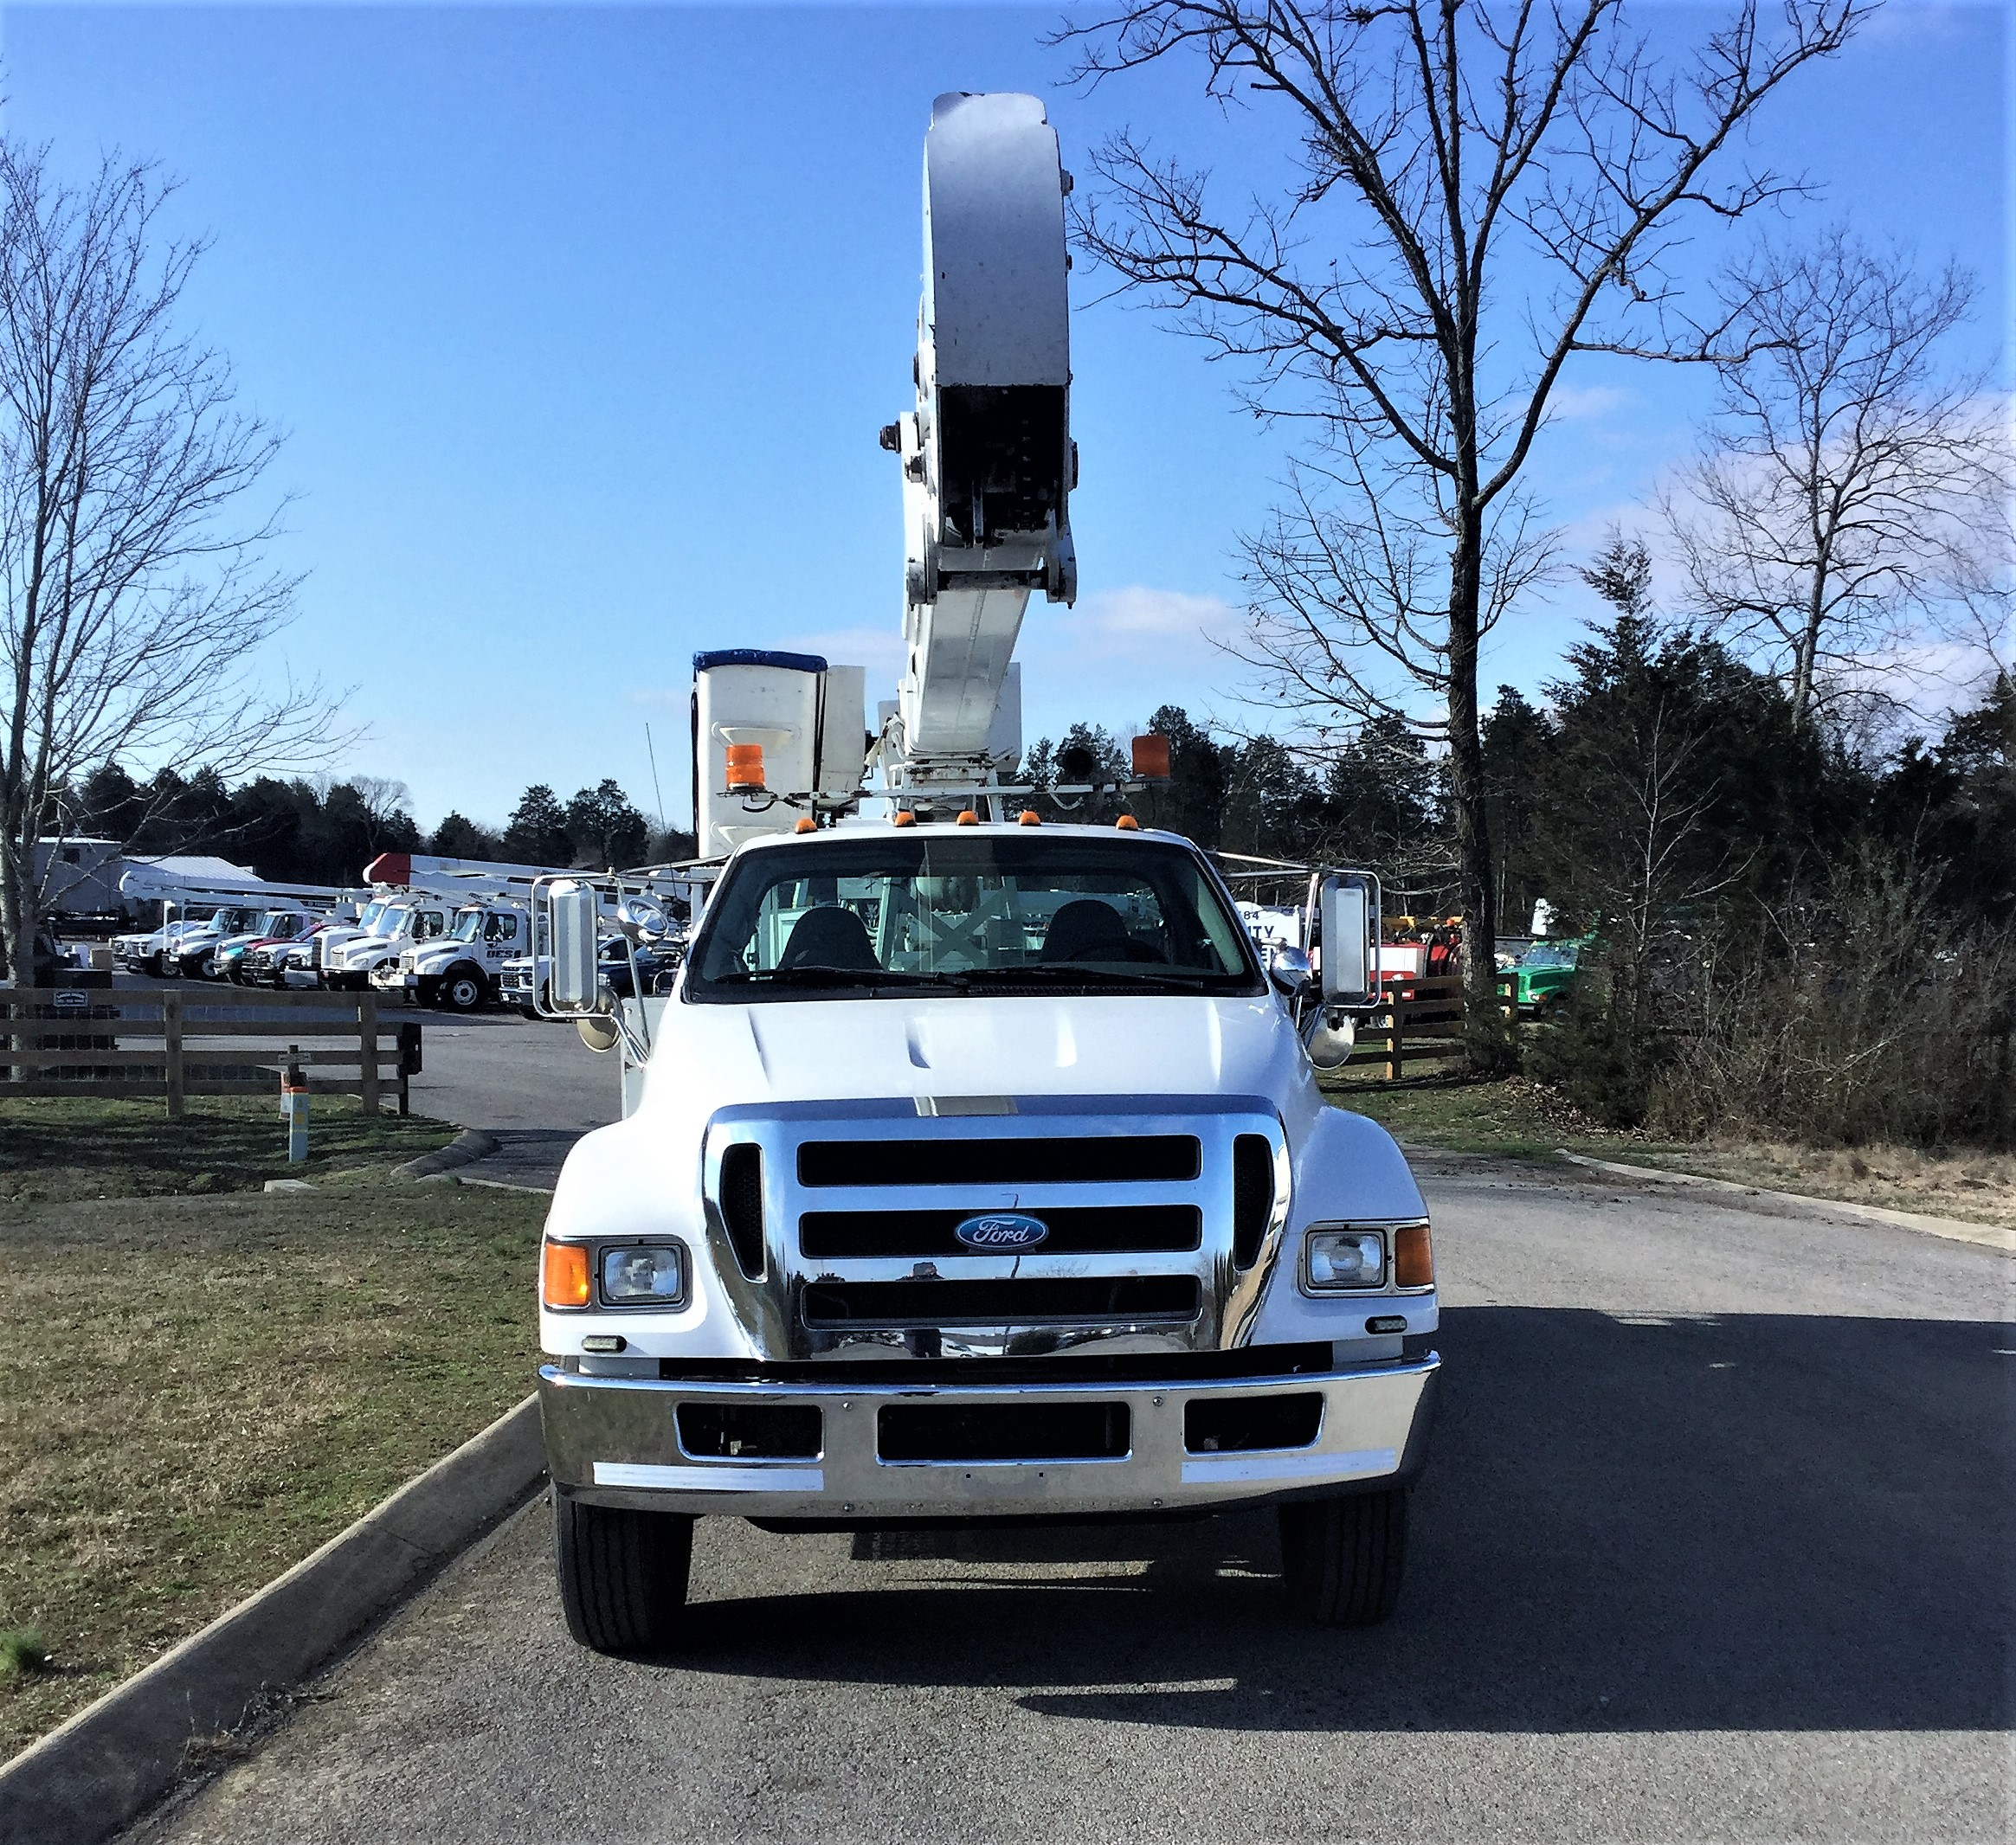 front view of large bucket truck for Sale from Utility Equipment Service in Spring Hill TN